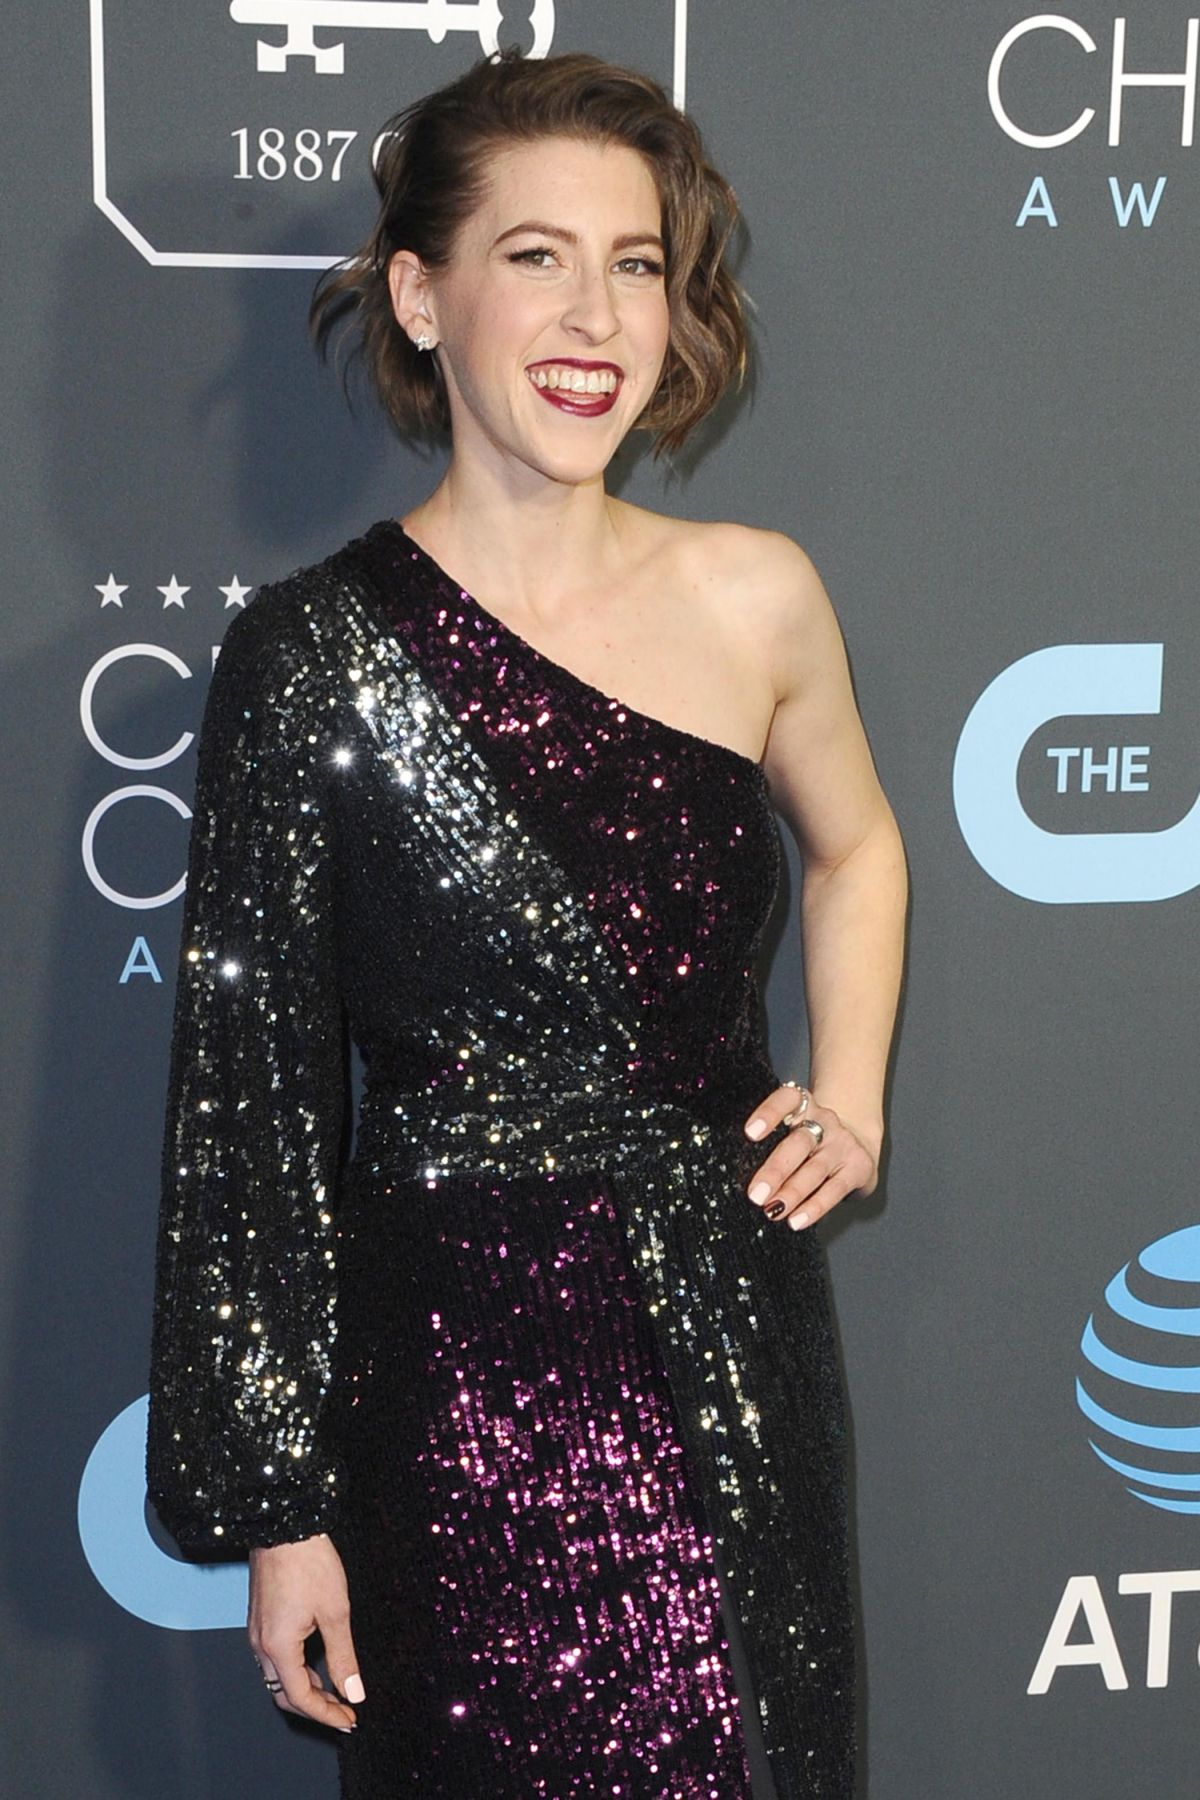 Sexy Eden Sher Hot Bikini Pictures Looks Beautiful And Charming